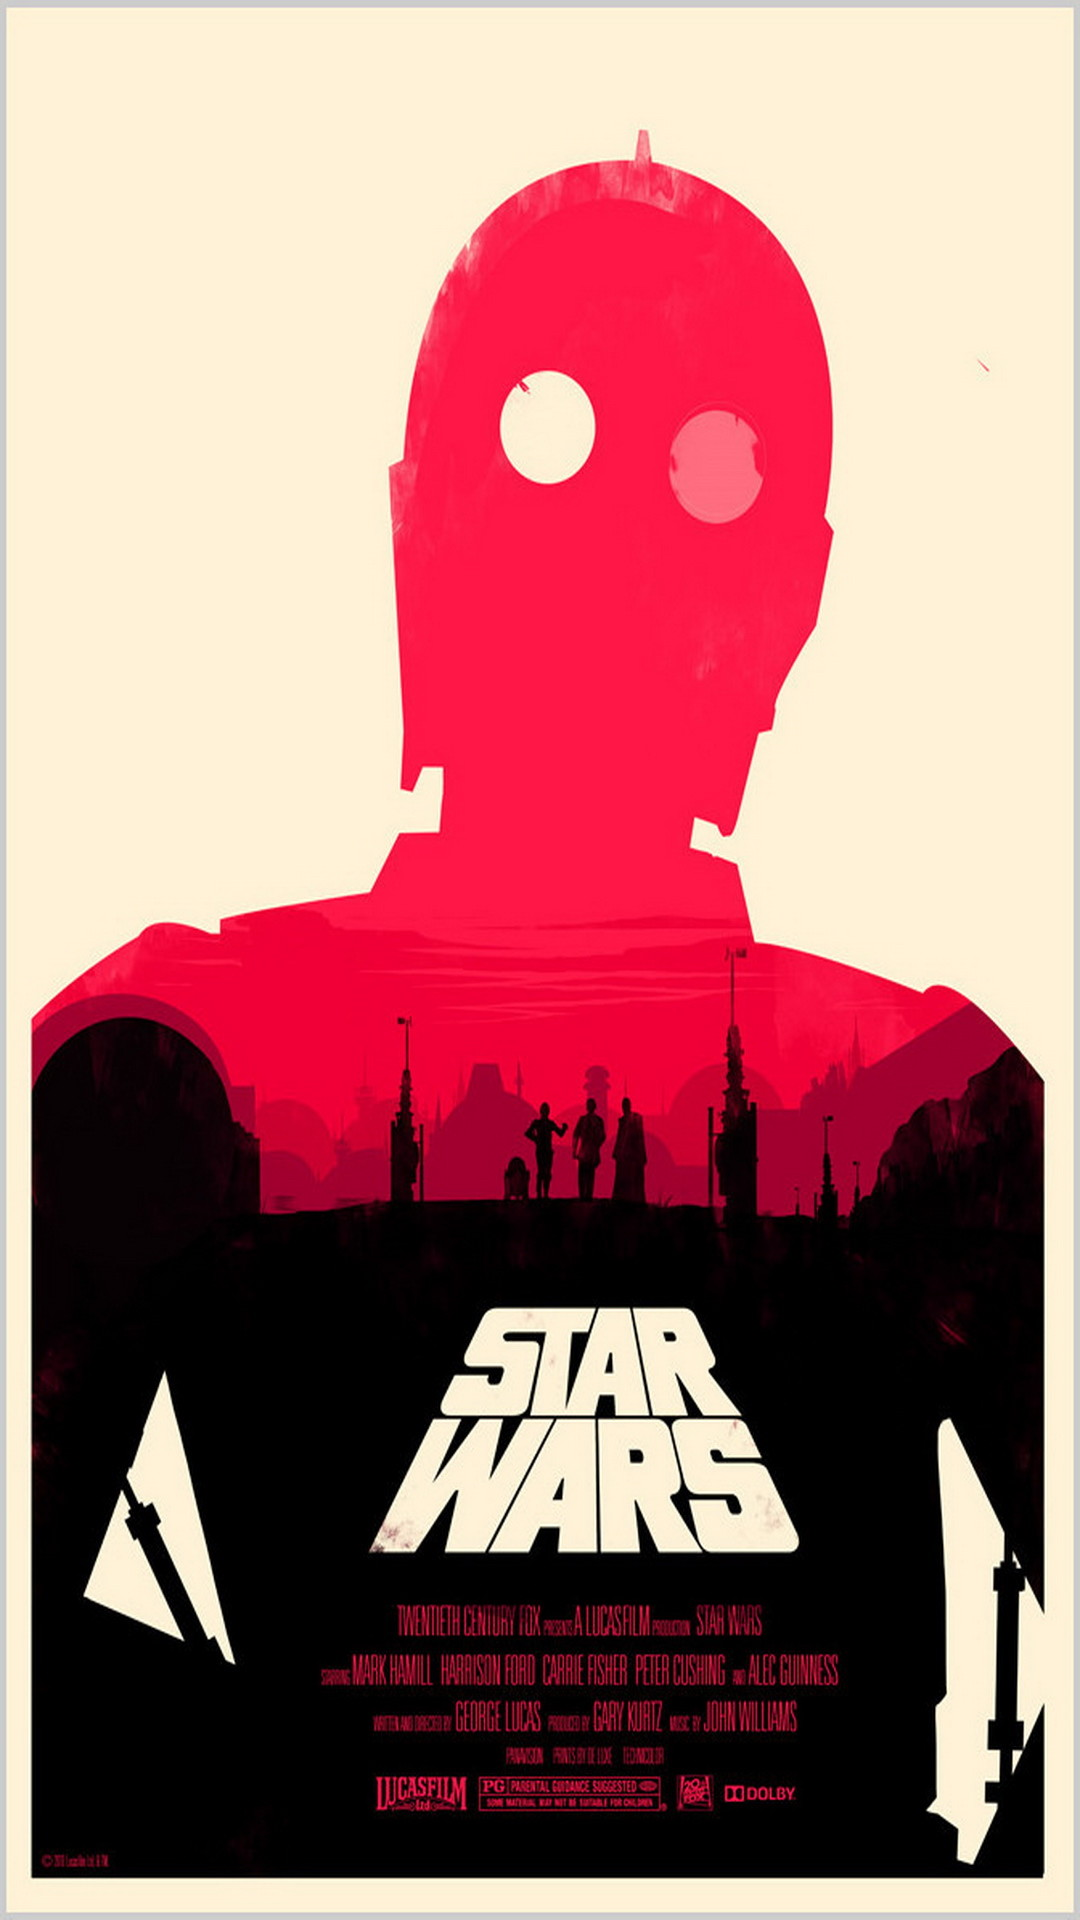 Star Wars Episode IV – A New Hope iPhone 6 Plus HD Wallpaper, Poster .